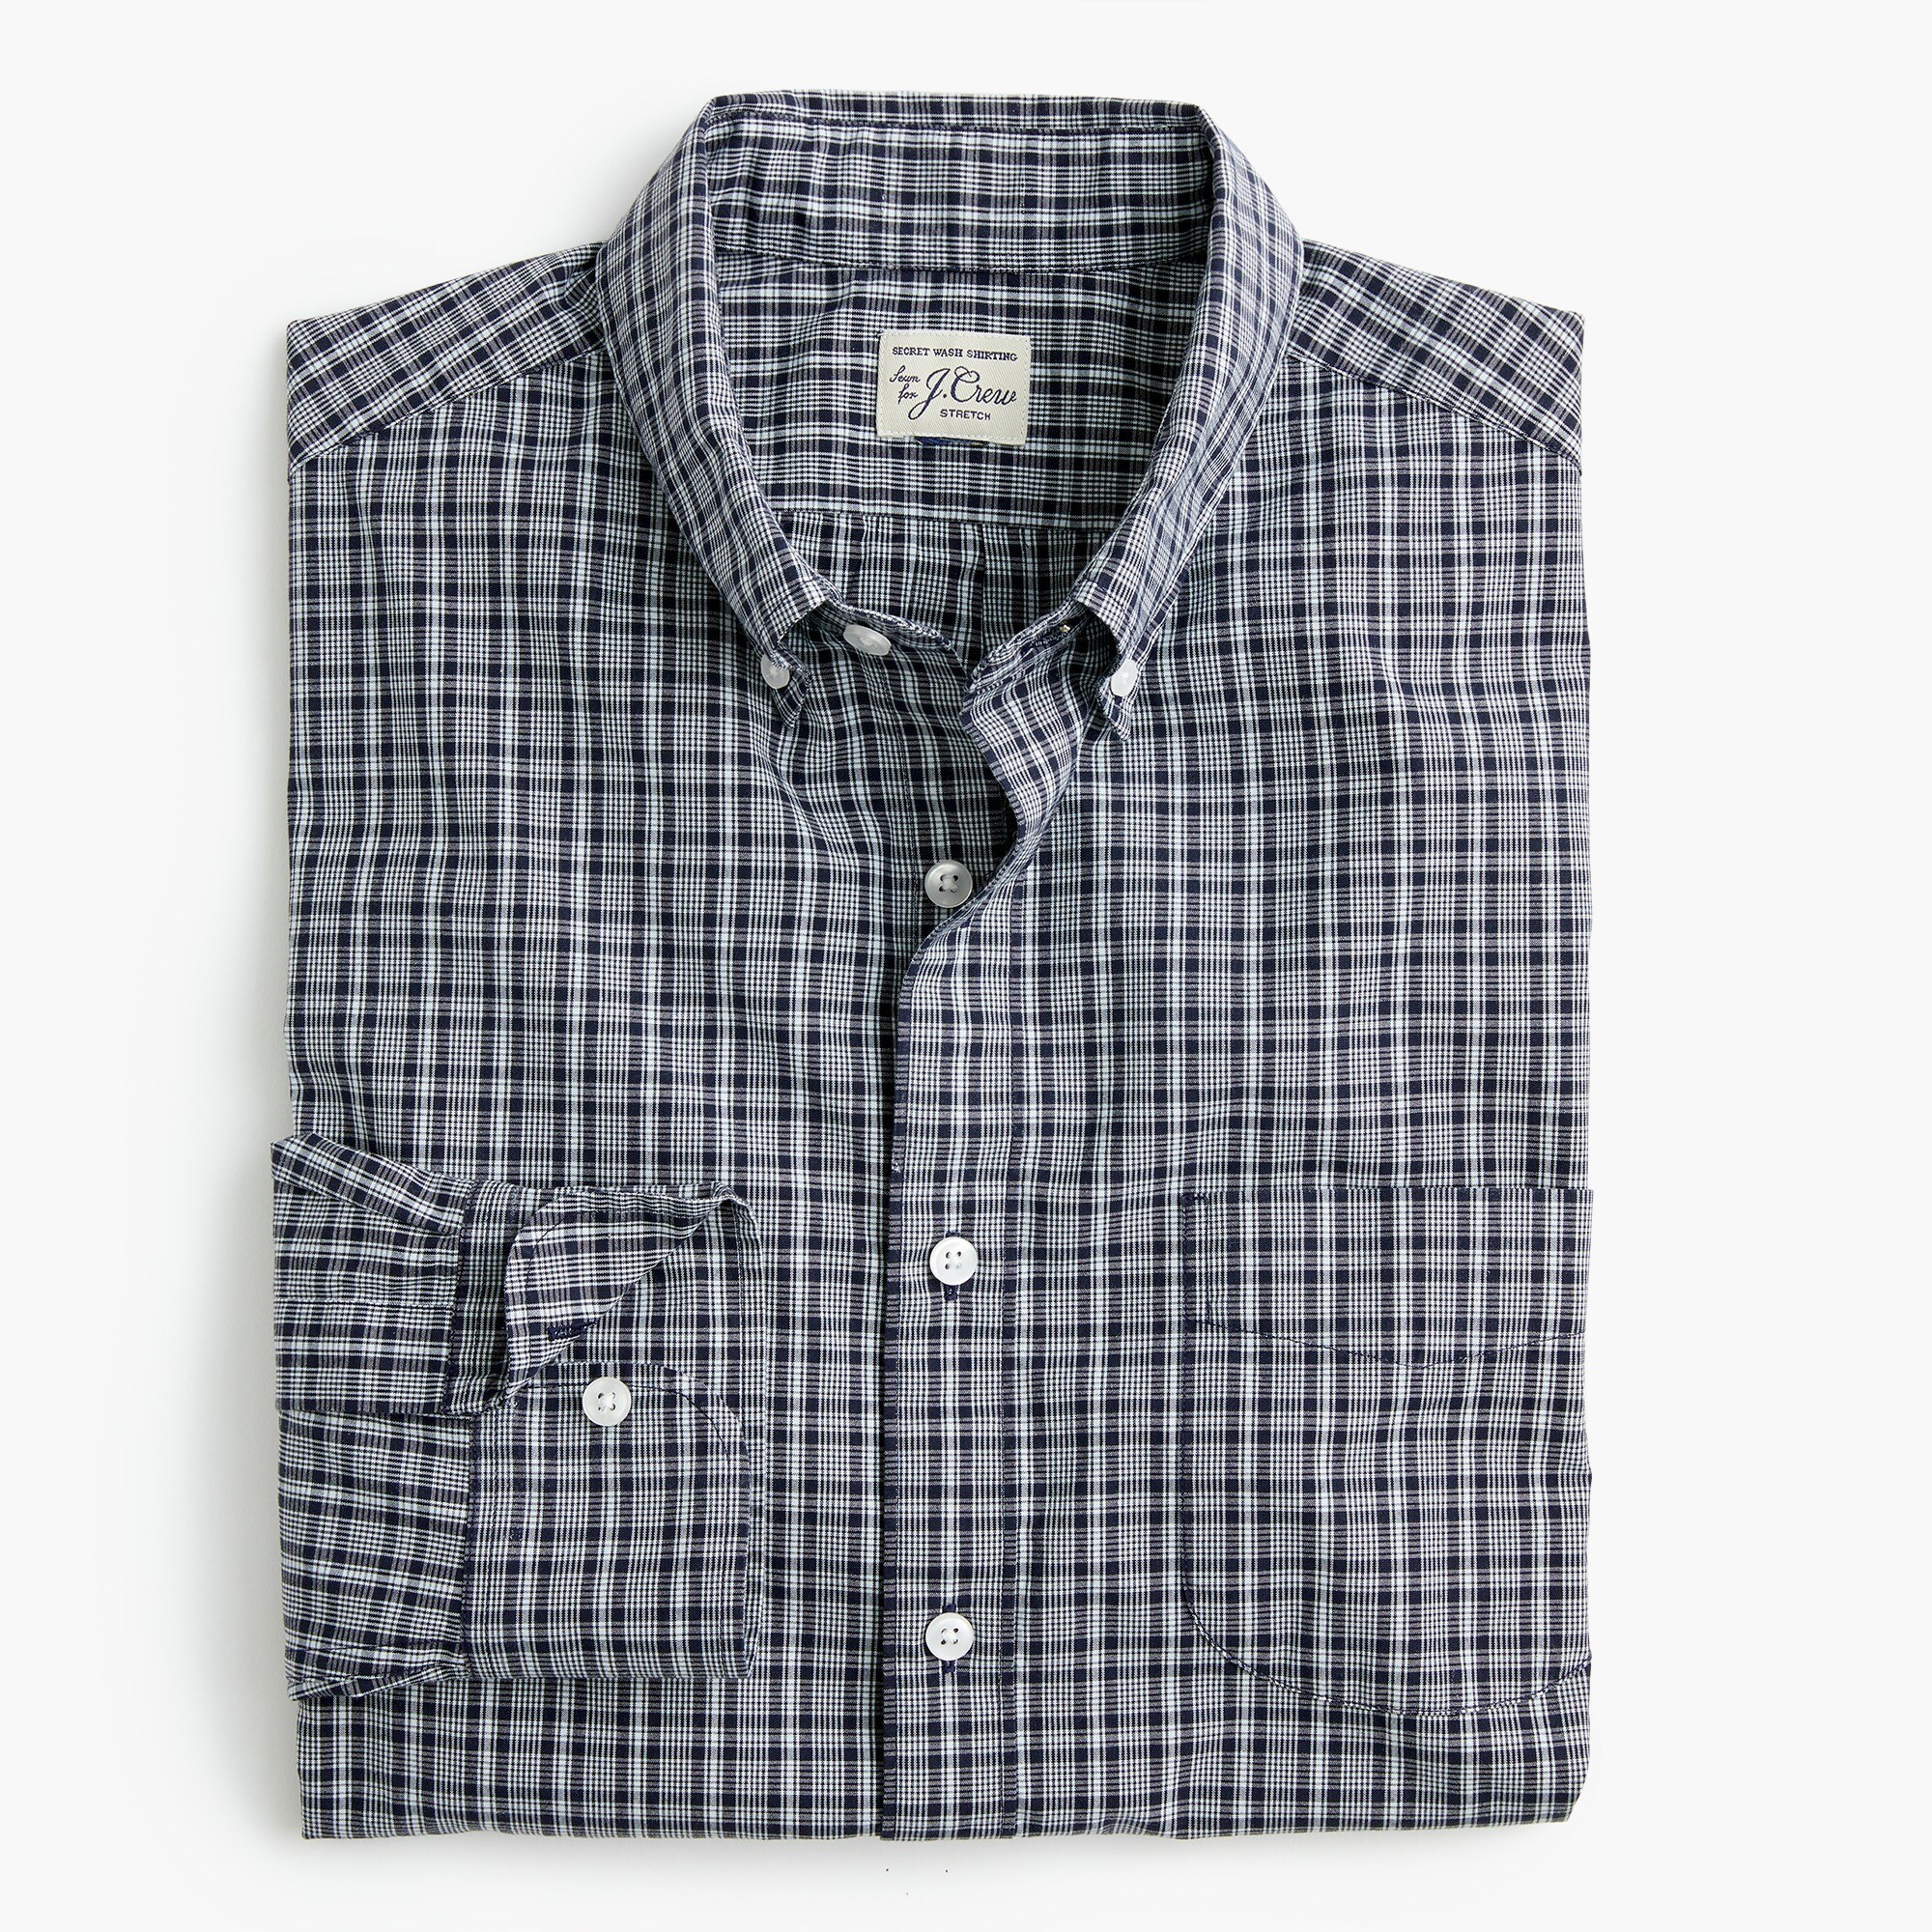 mens Slim stretch Secret Wash shirt in dark navy plaid